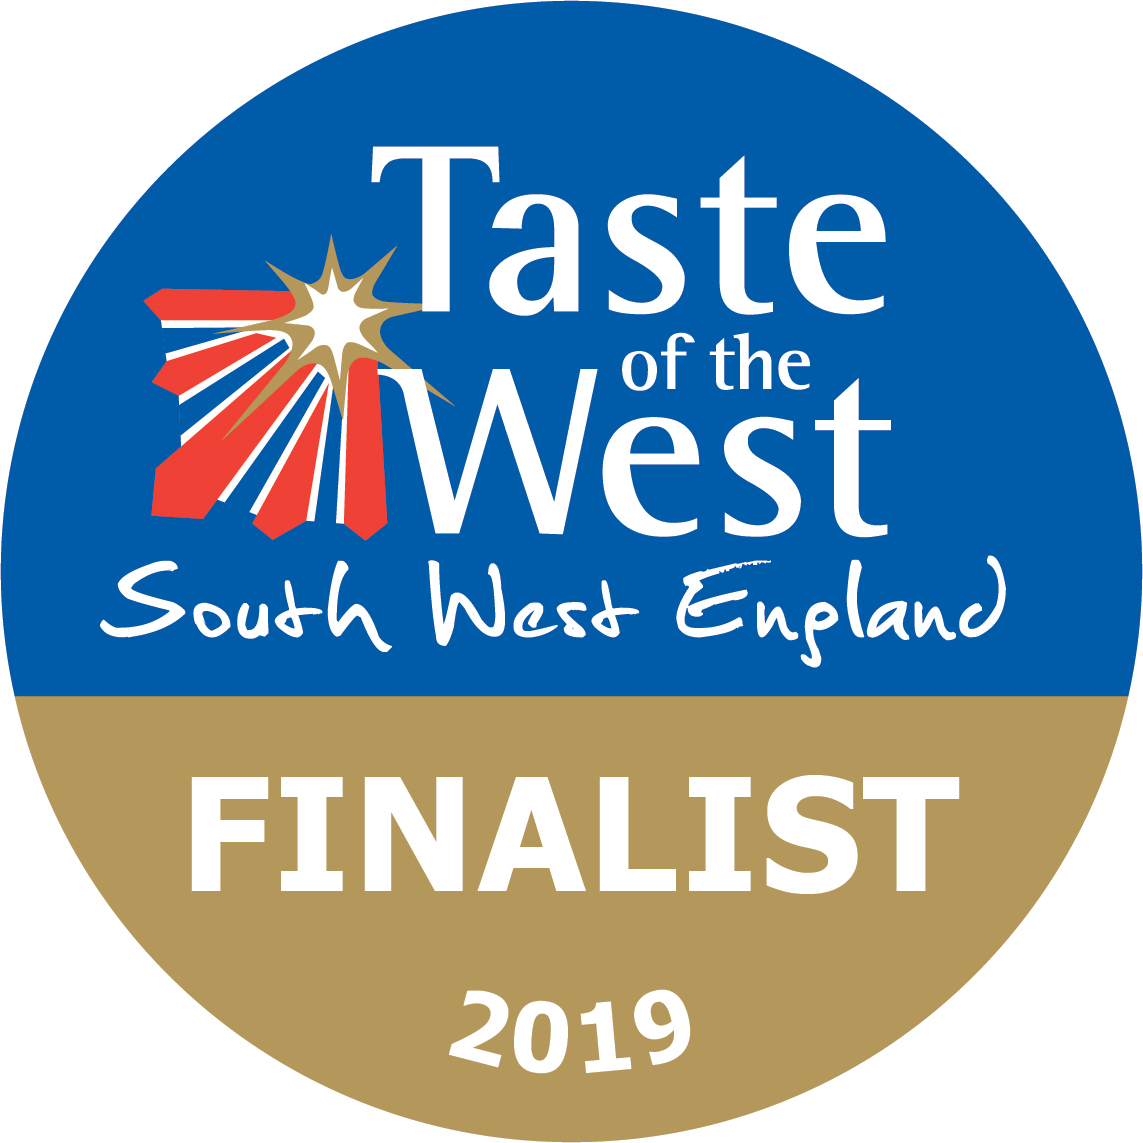 2019 Finalist Taste of the West Award